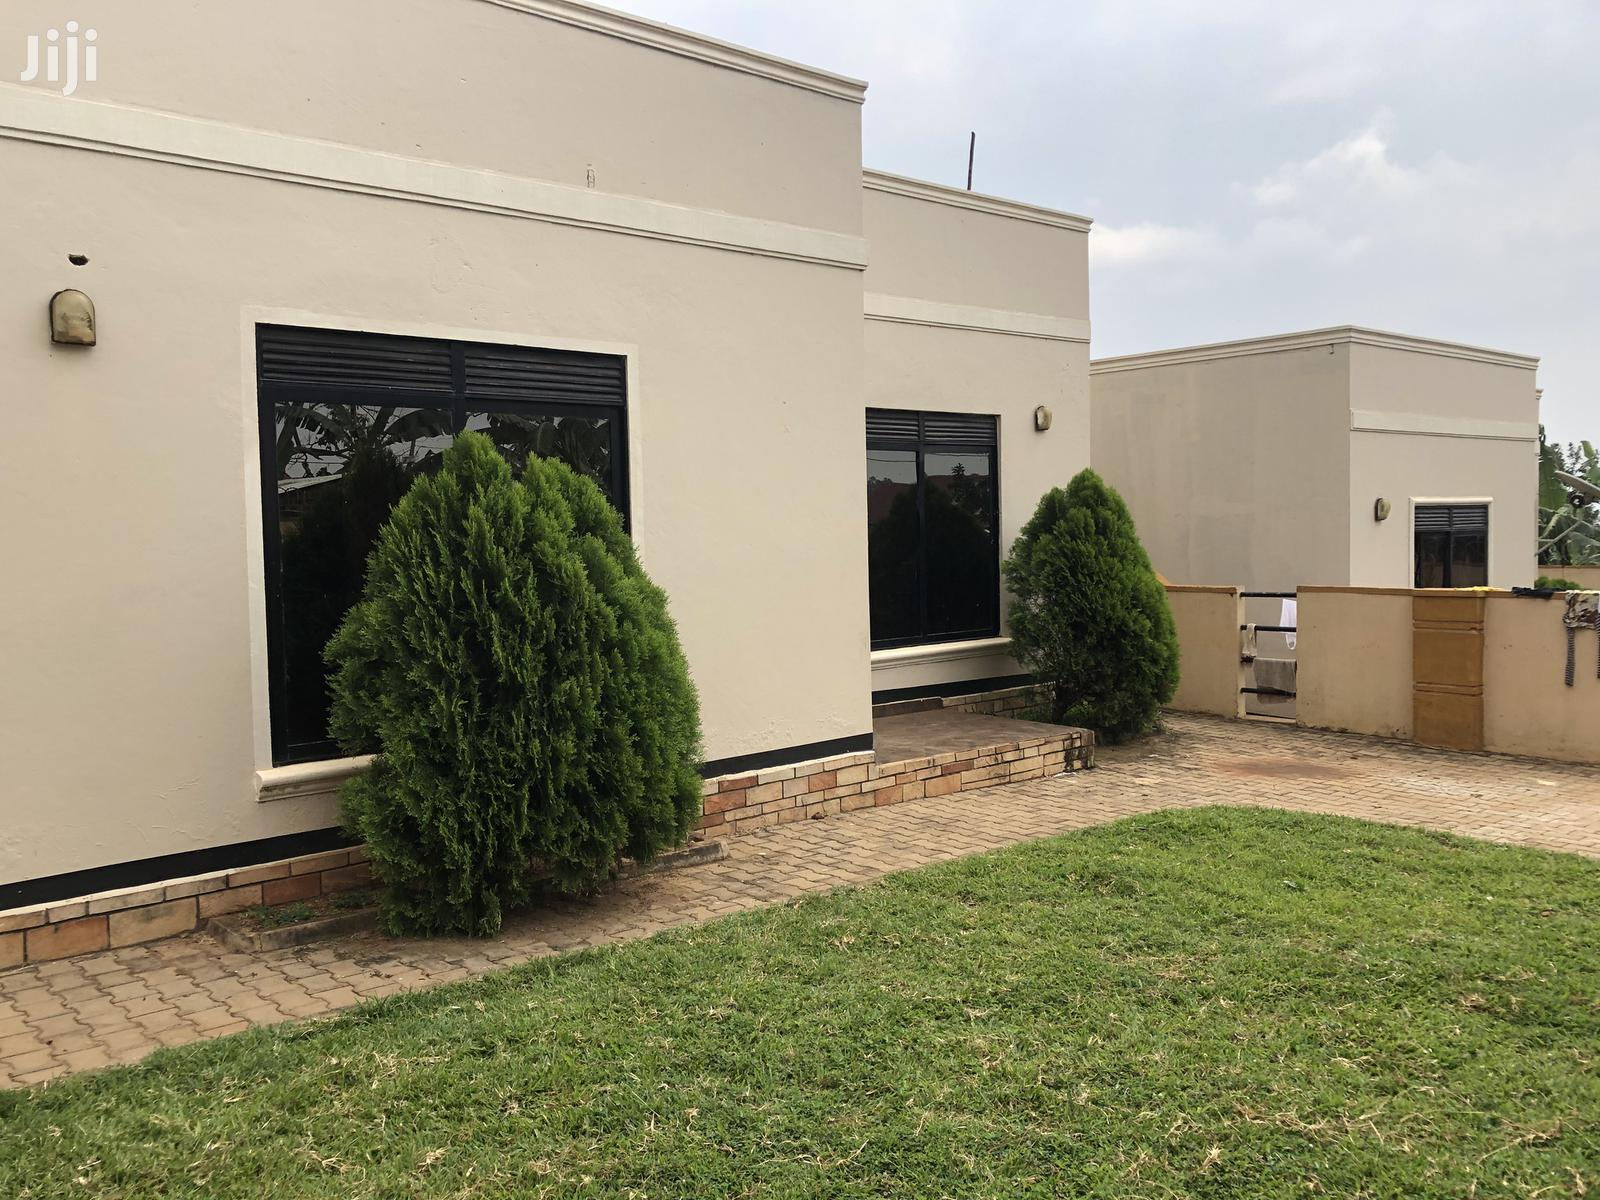 Kira Classy Villas on Sell | Houses & Apartments For Sale for sale in Kampala, Central Region, Uganda